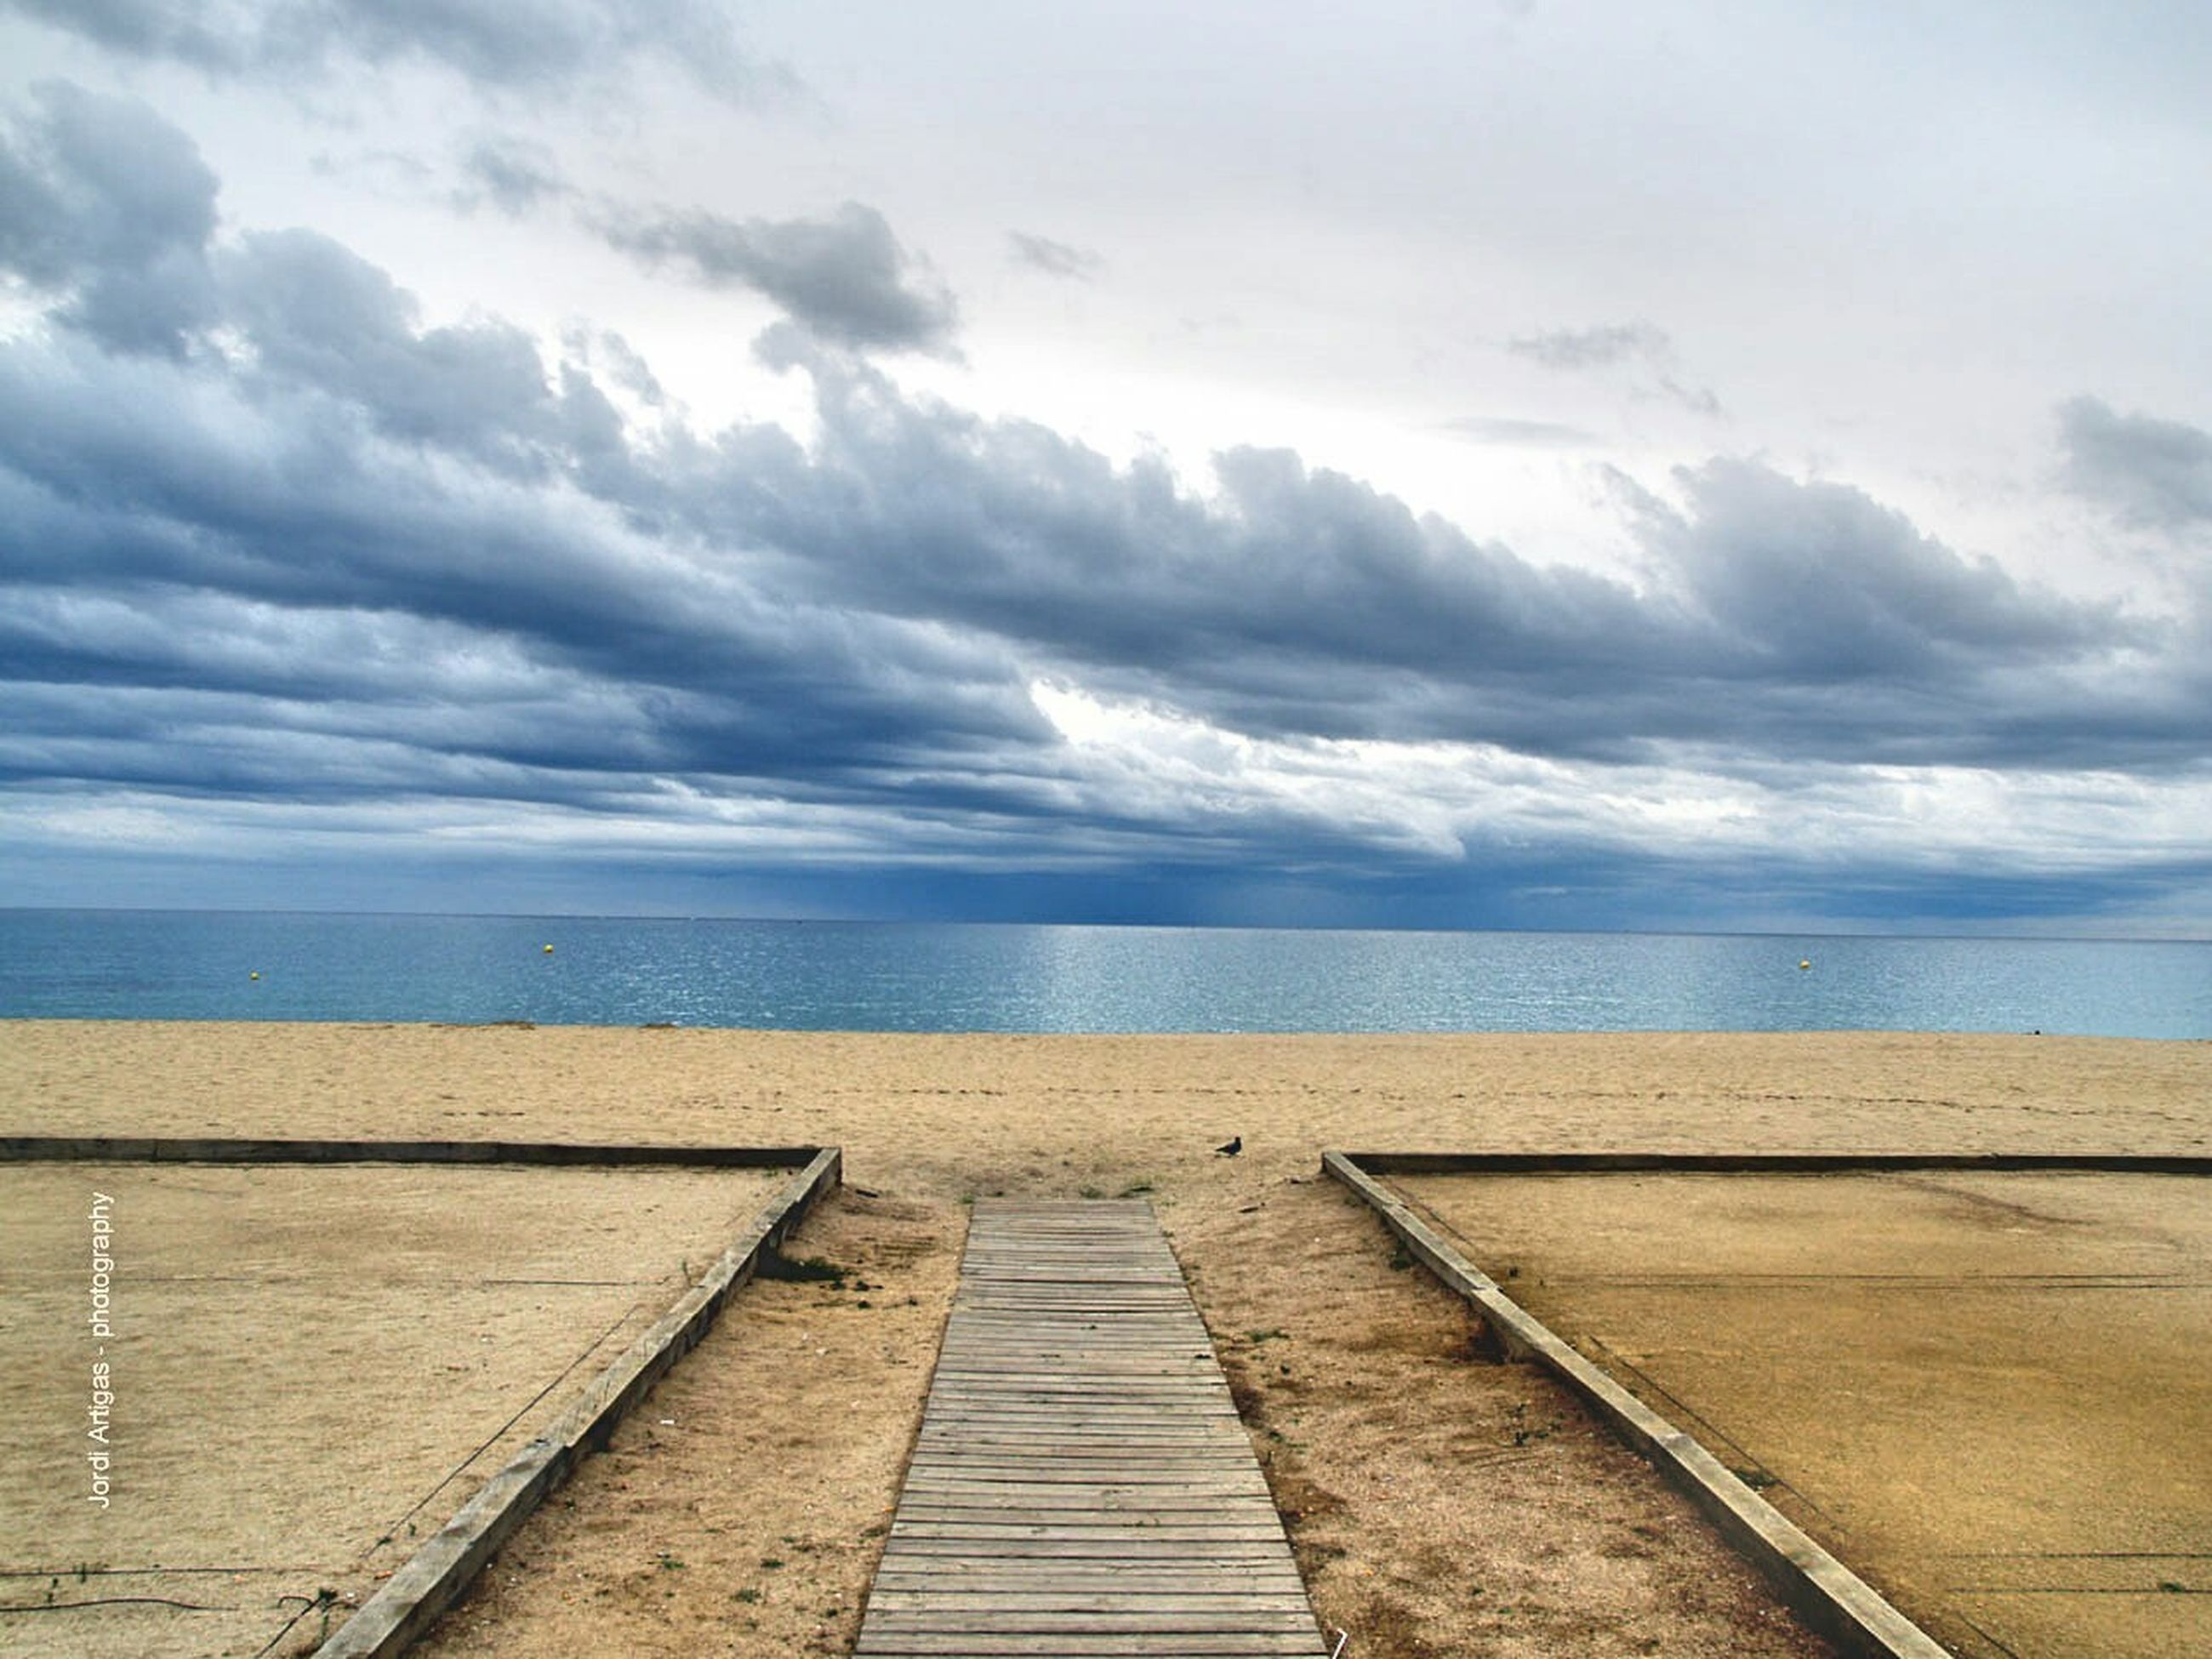 sea, beach, tranquil scene, the way forward, outdoors, horizon over water, tranquility, cloud - sky, sand, no people, water, scenics, beauty in nature, day, sky, nature, wheelchair access